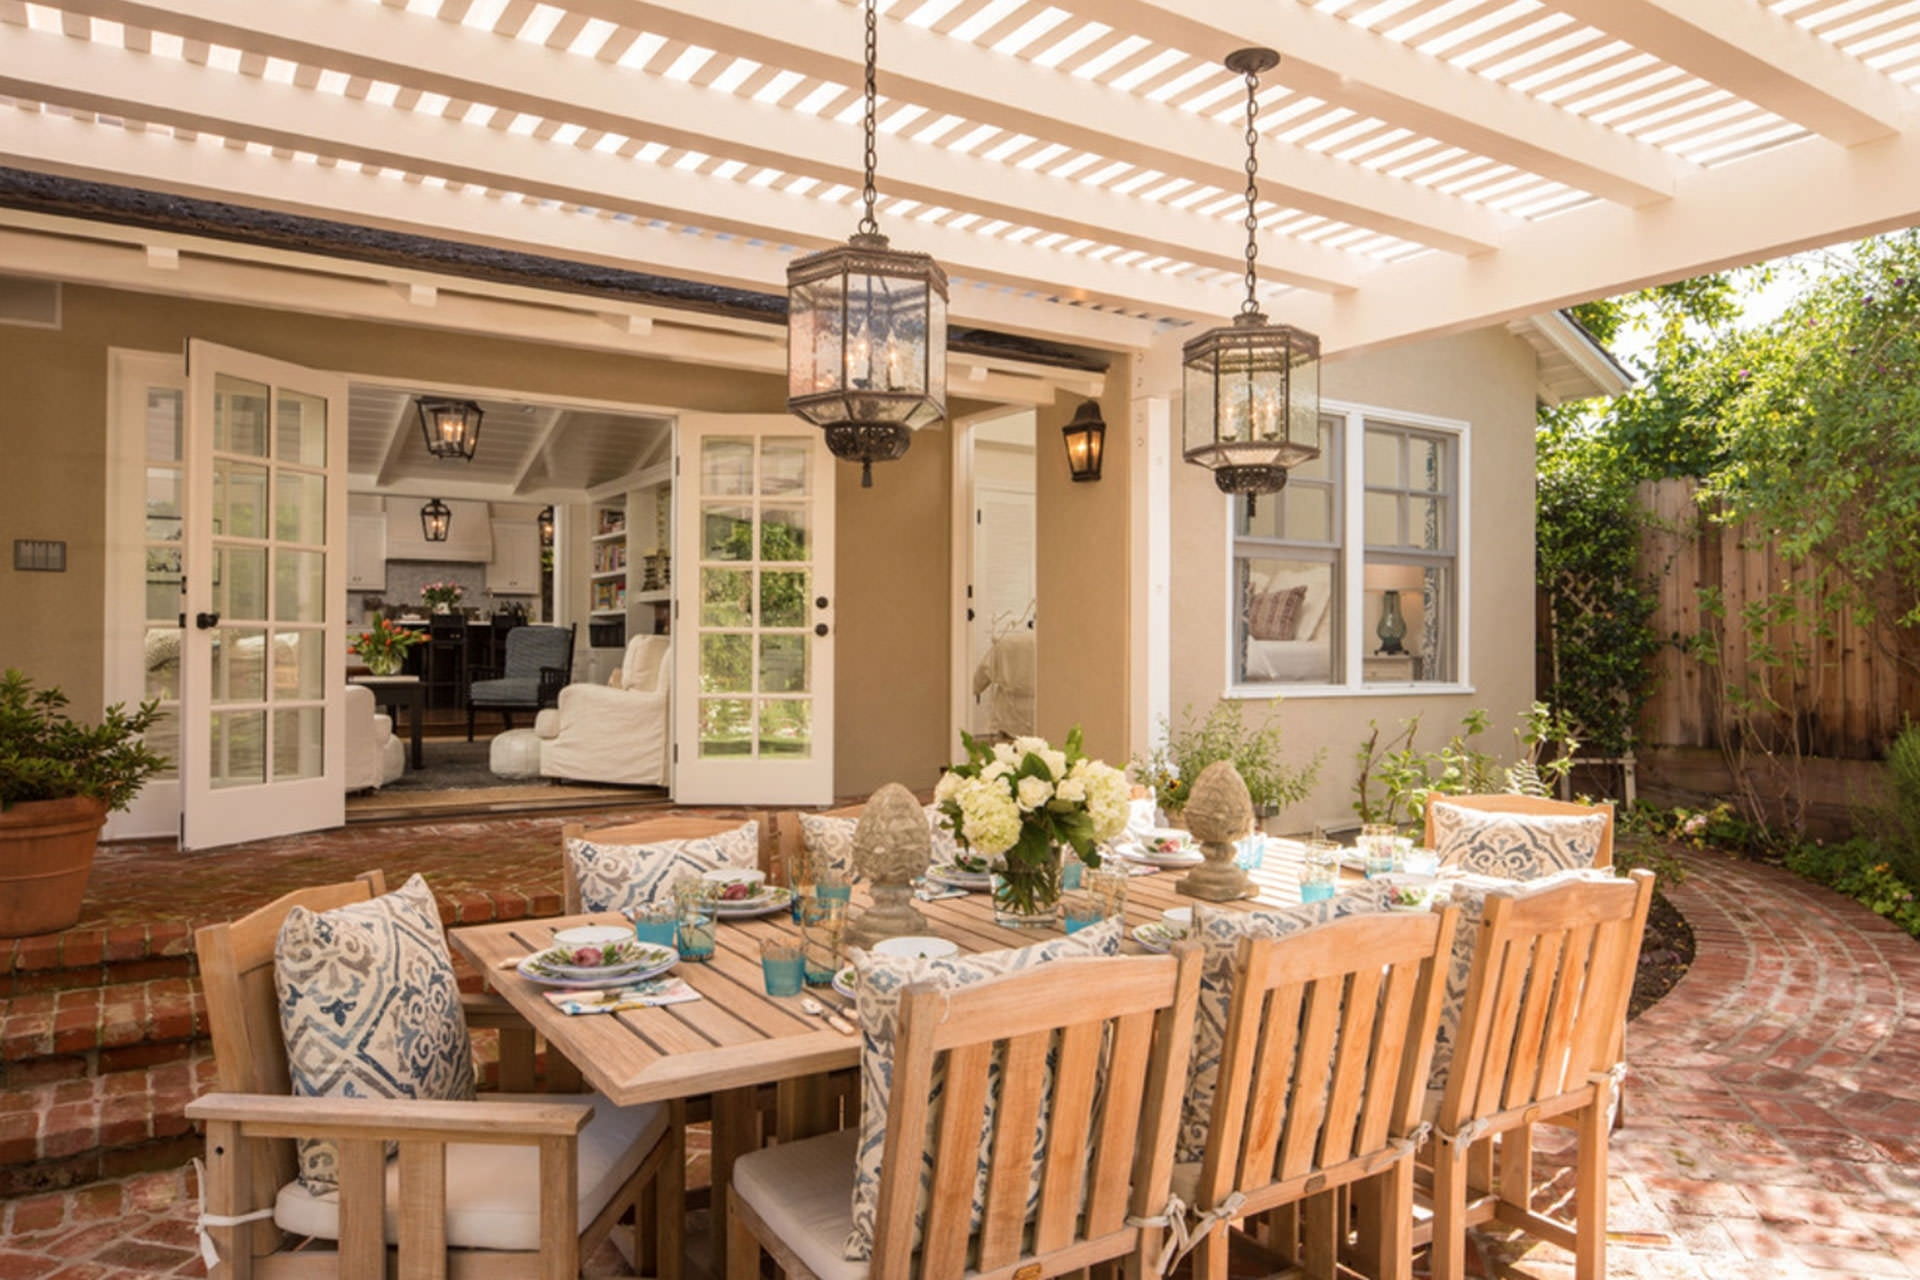 Most Recently Released Outdoor Hanging Lanterns For Patio Pertaining To 33 Neat Design Outdoor Lantern Lighting Ideas Five Pergola To (View 7 of 20)